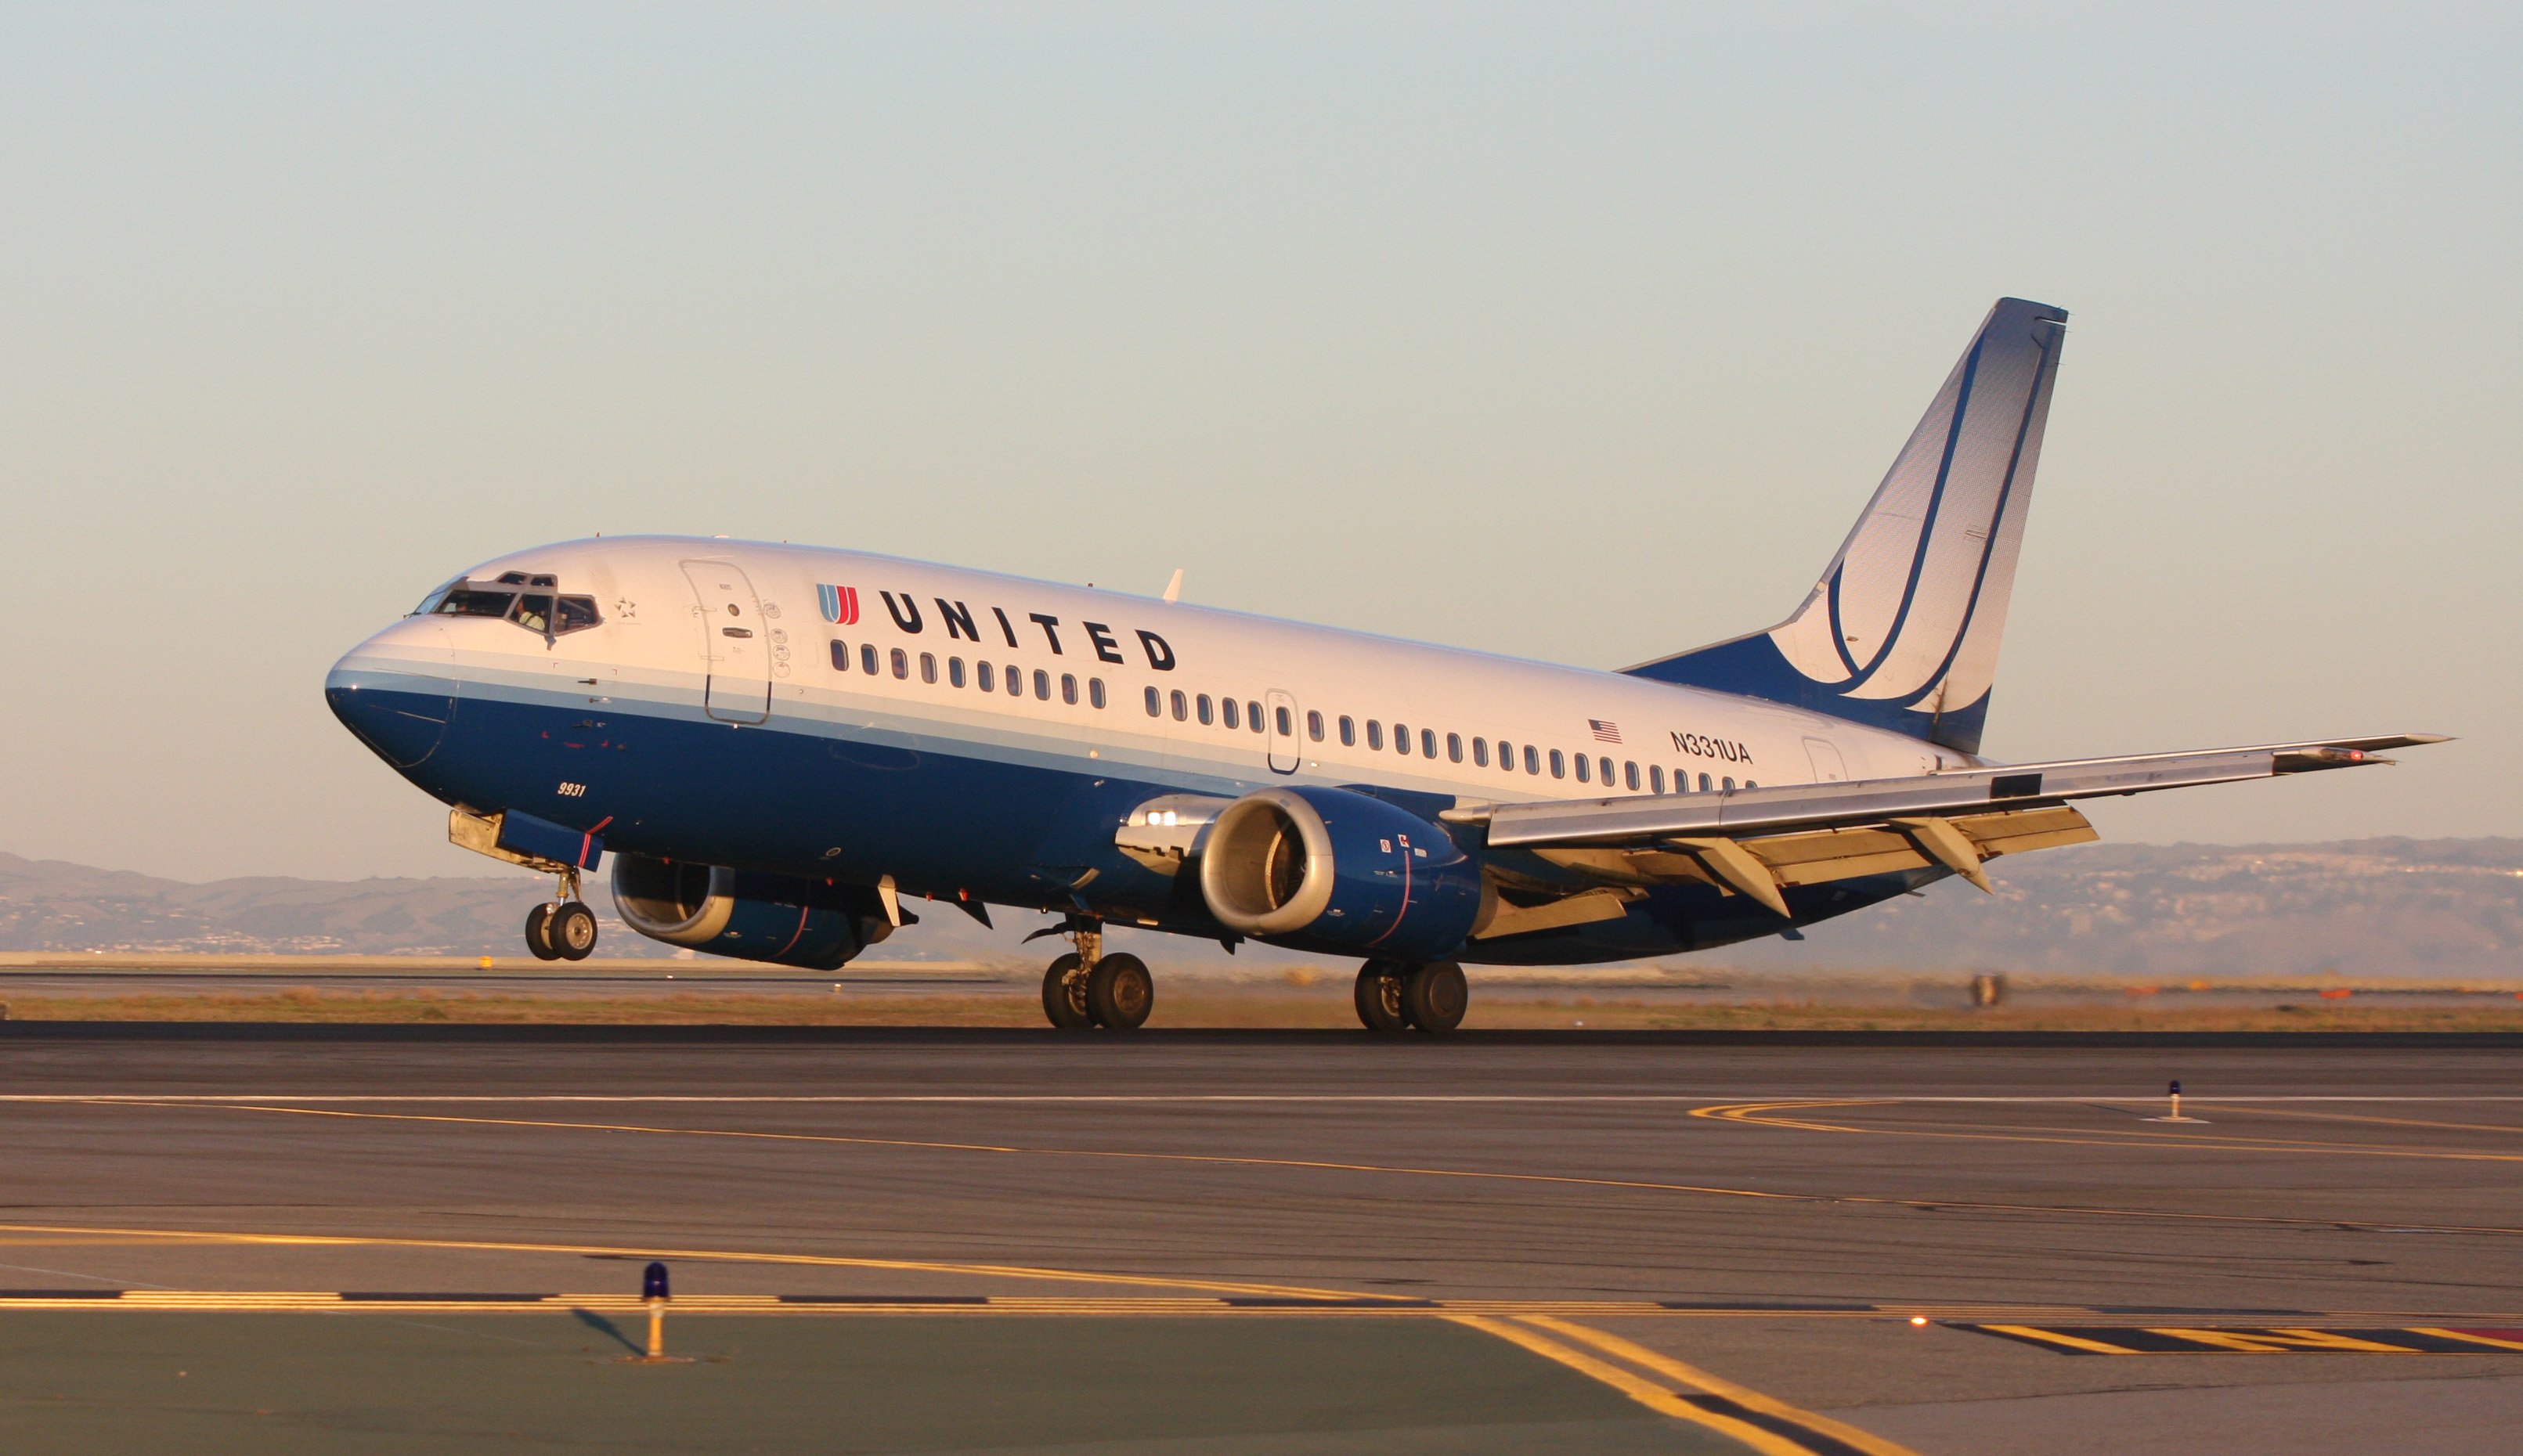 NYC-bound flight from Cairo diverted after threat - CBS News